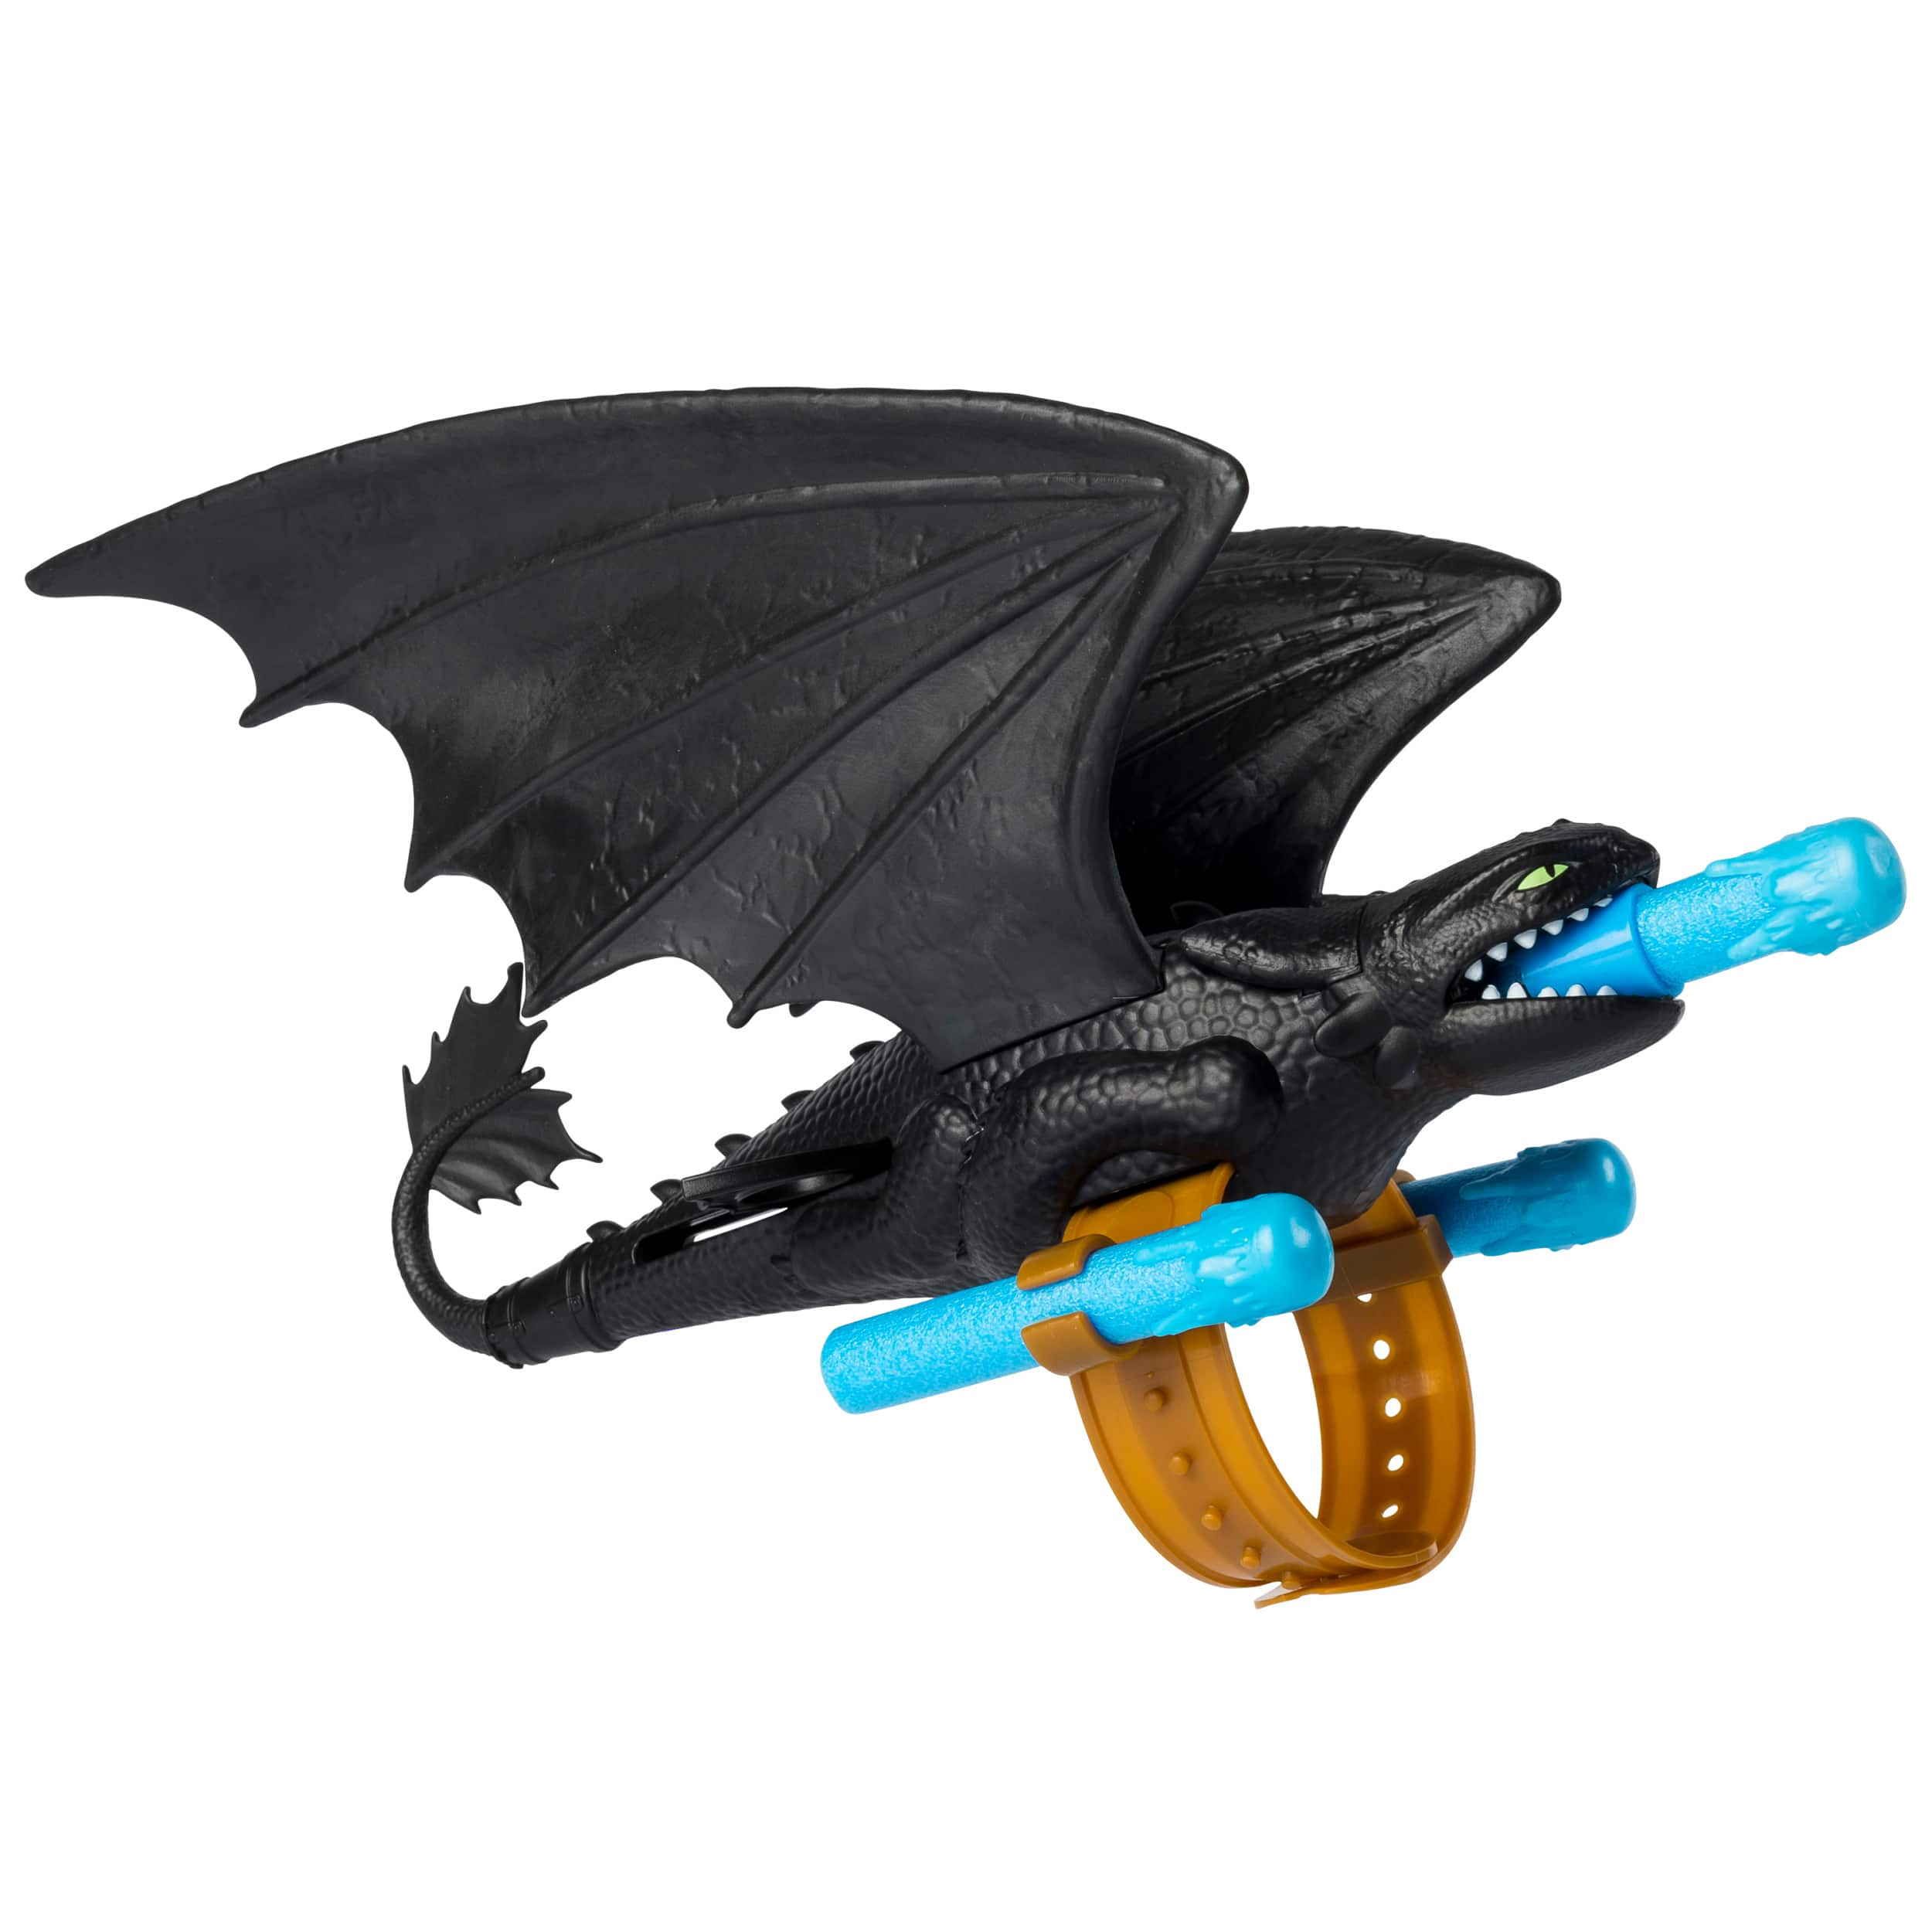 DreamWorks How to Train Dragon Toothless Wrist Launcher Toy - $4.99 + Free S/H on $35+ @ Walmart